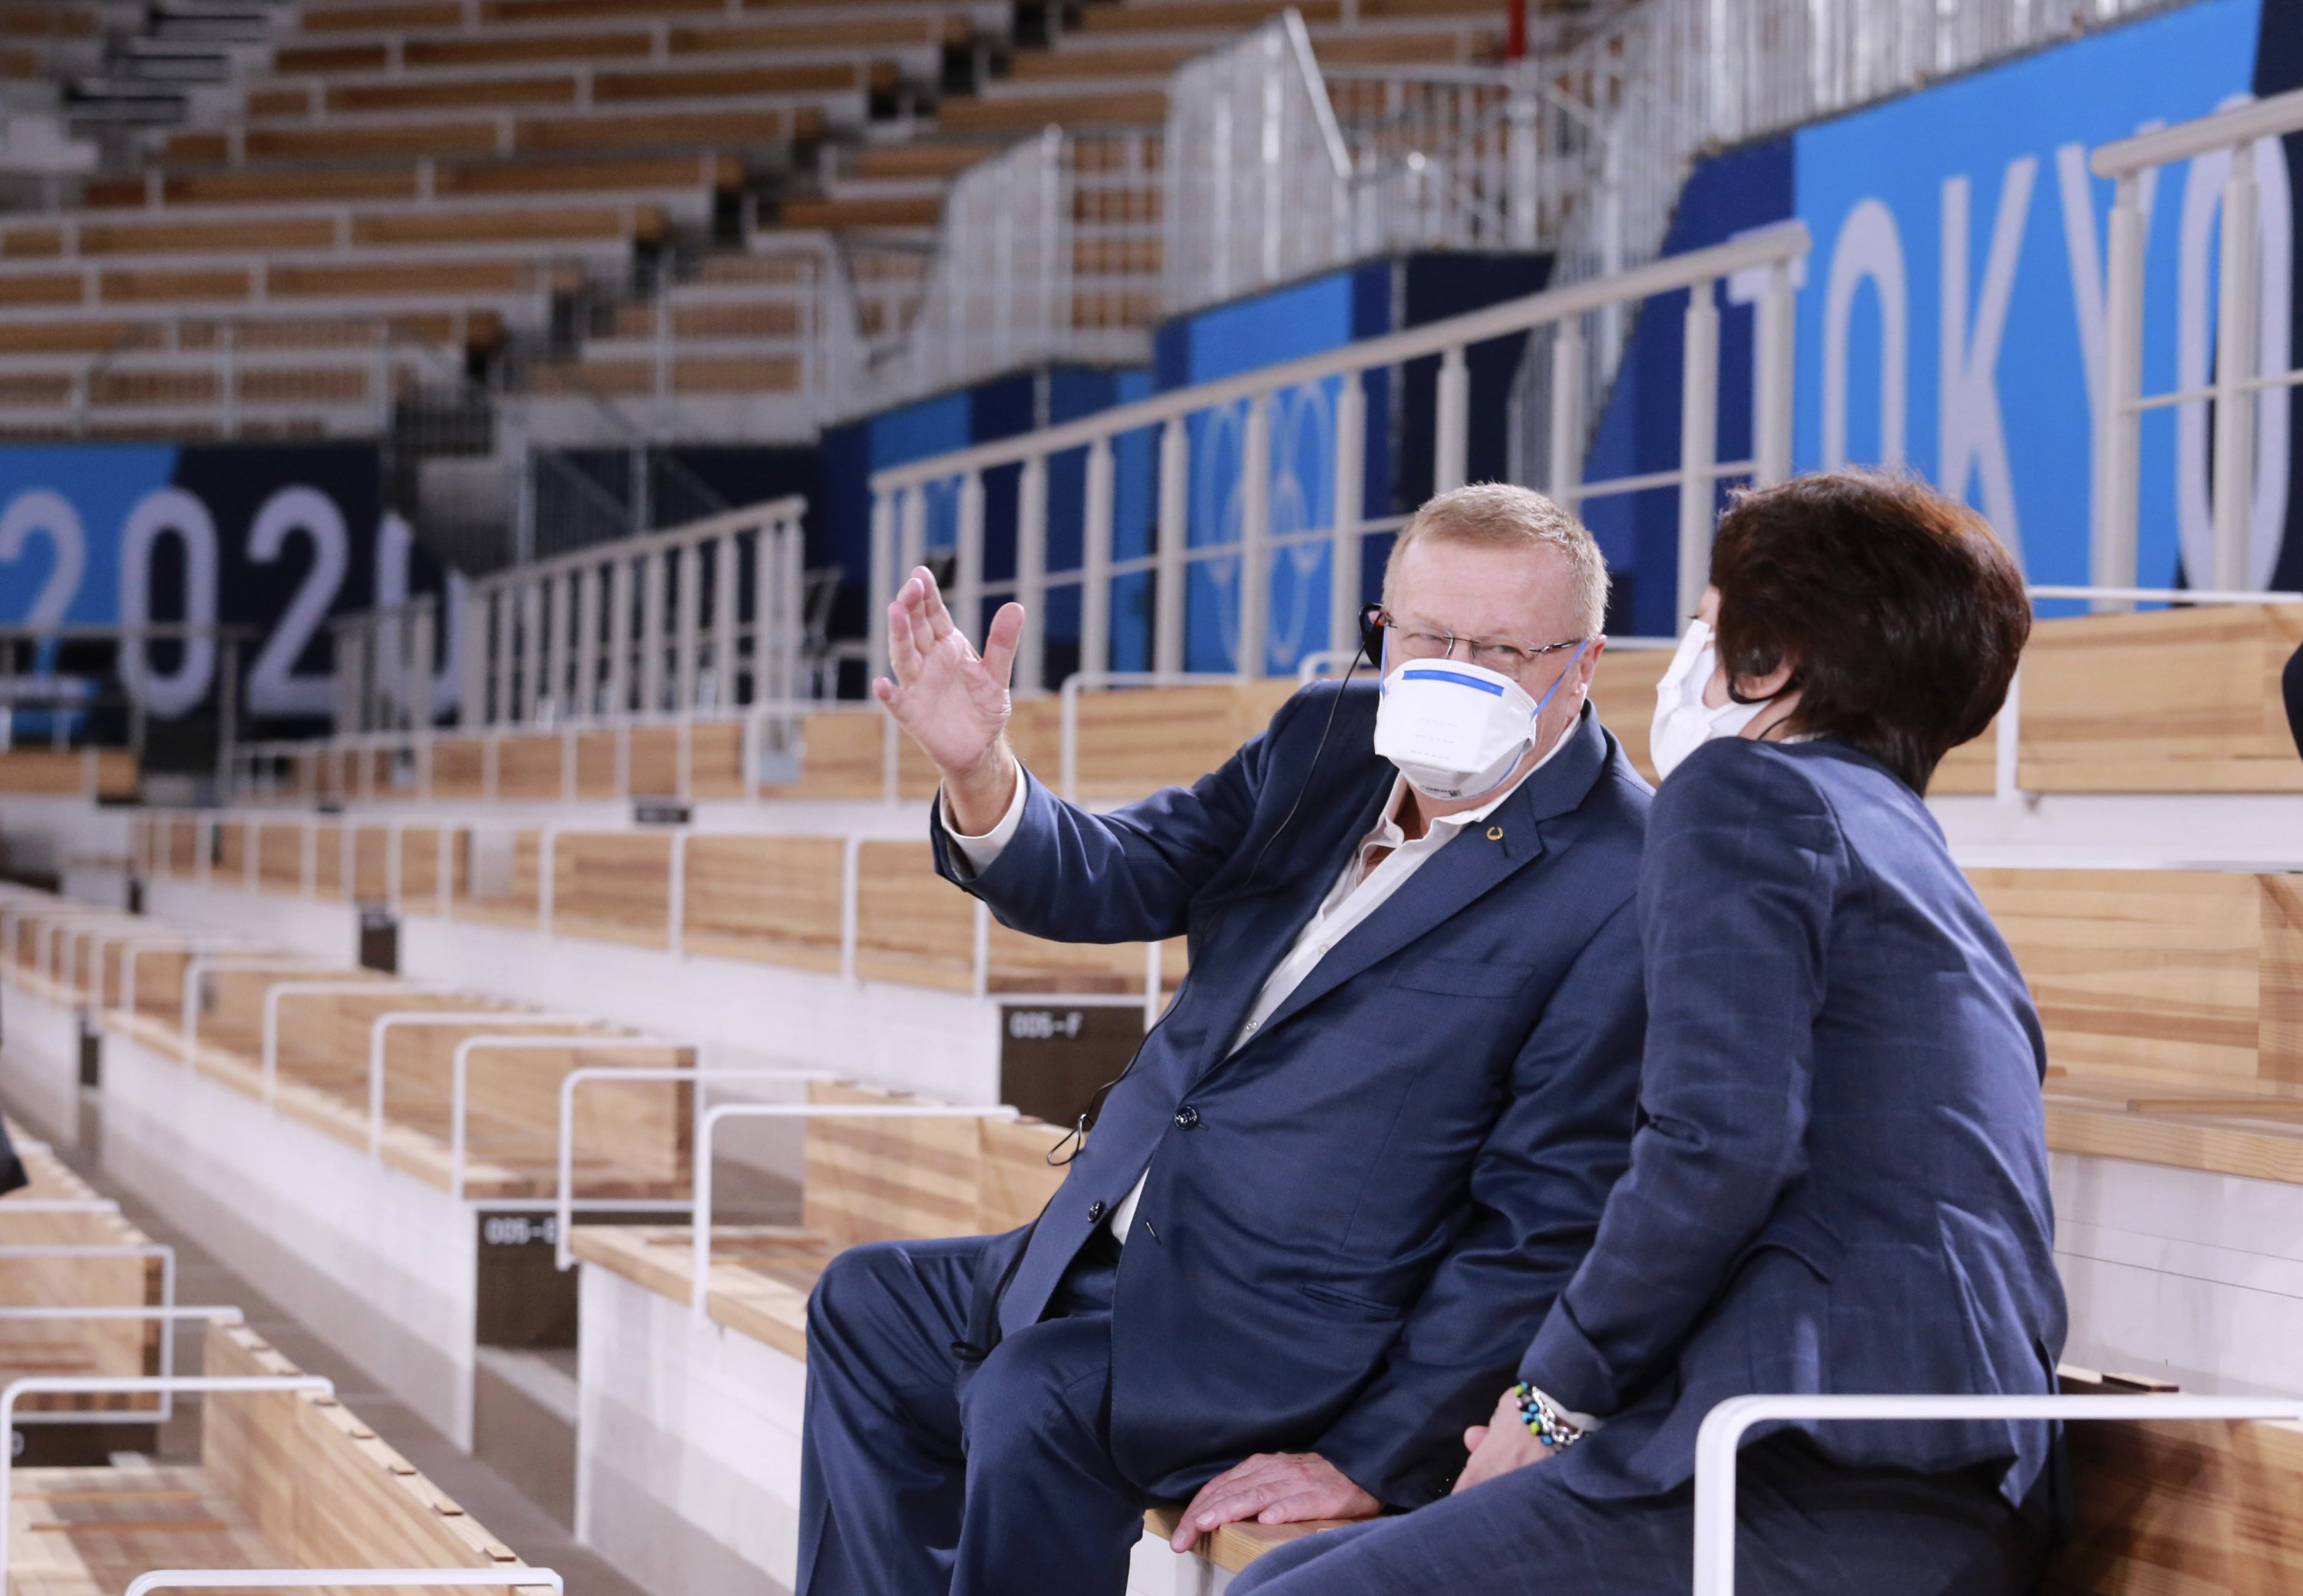 International Olympic Committee (IOC) Vice President John Coates (L) talks with Tokyo 2020 Olympics Organizing Committee President Seiko Hashimoto during their inspection at Ariake Gymnastics Center in Tokyo, Japan, June 23, 2021. (AP Photo)